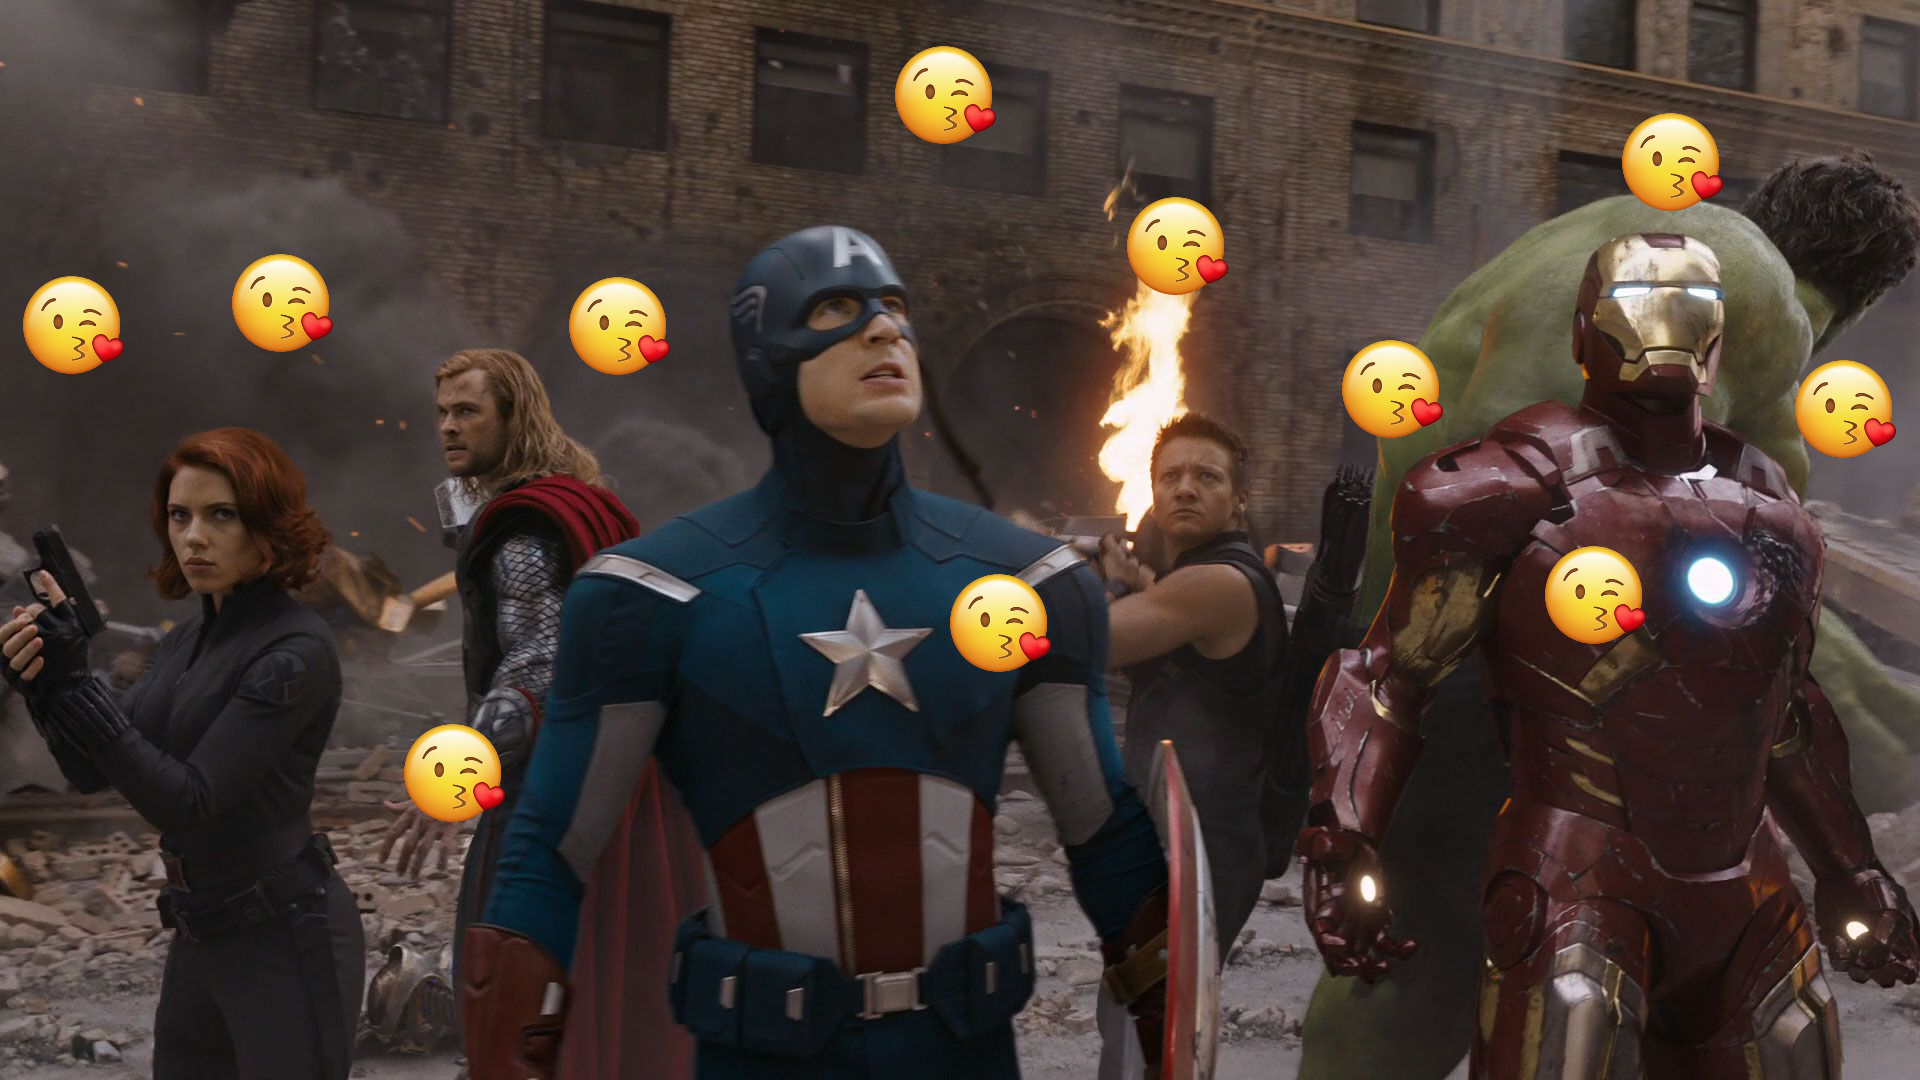 The Avengers are surrounded.....by kiss emoji